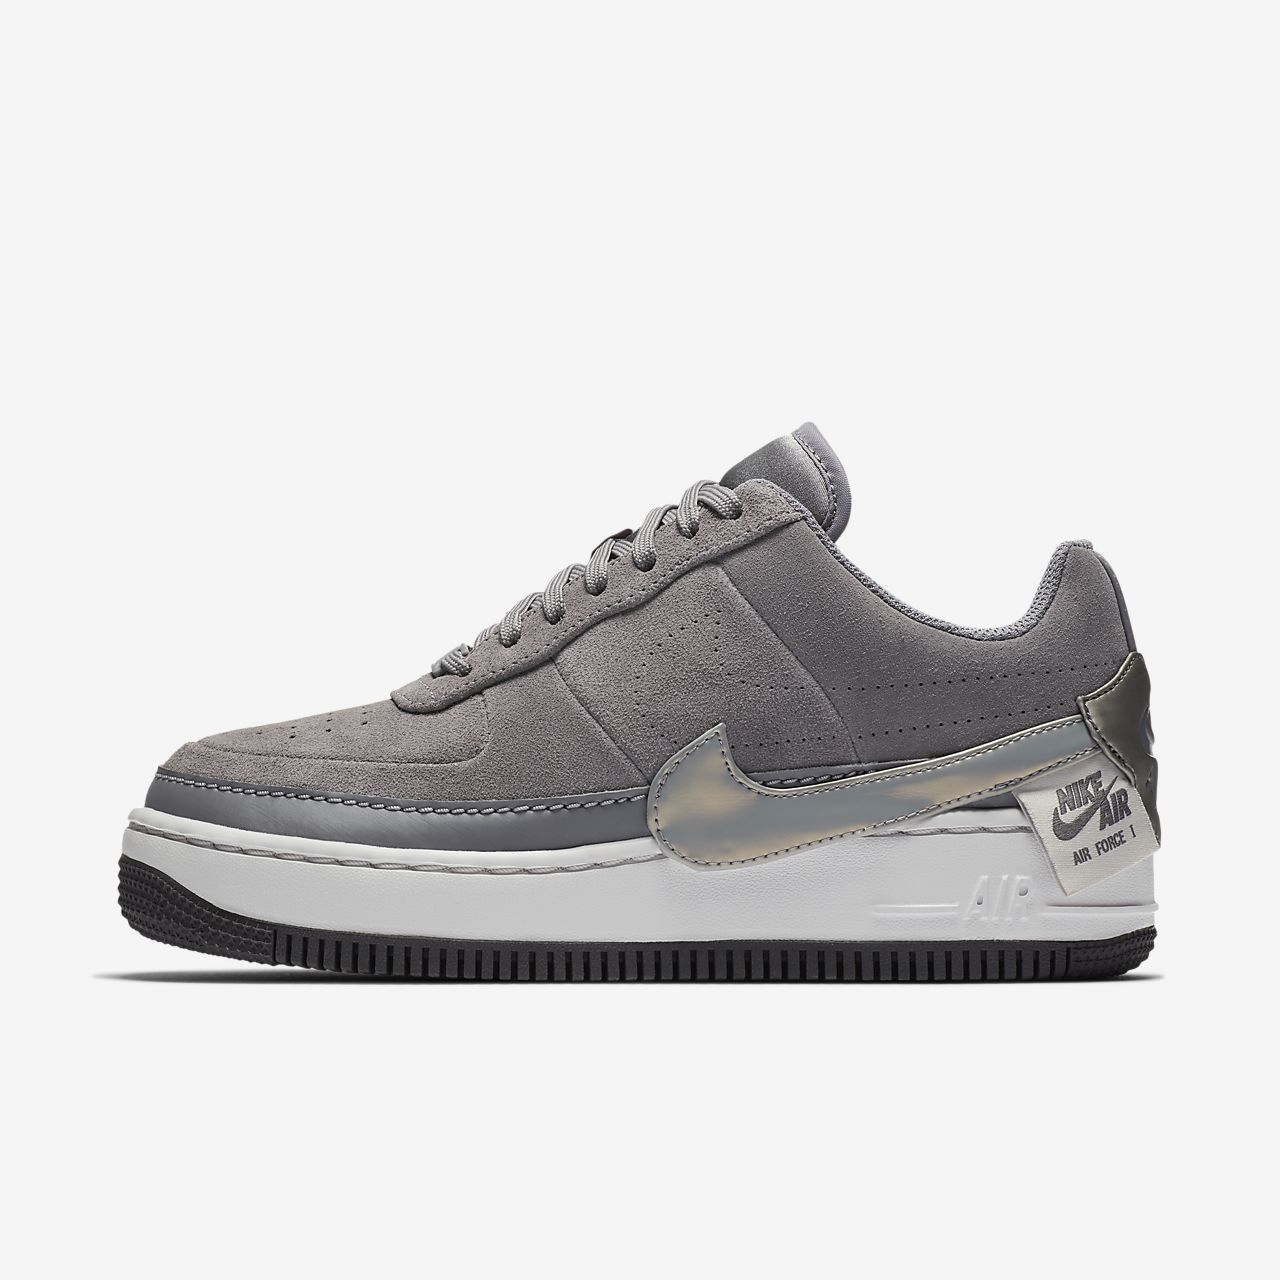 the latest 860e1 34080 ... Nike Air Force 1 Jester-sko til kvinder